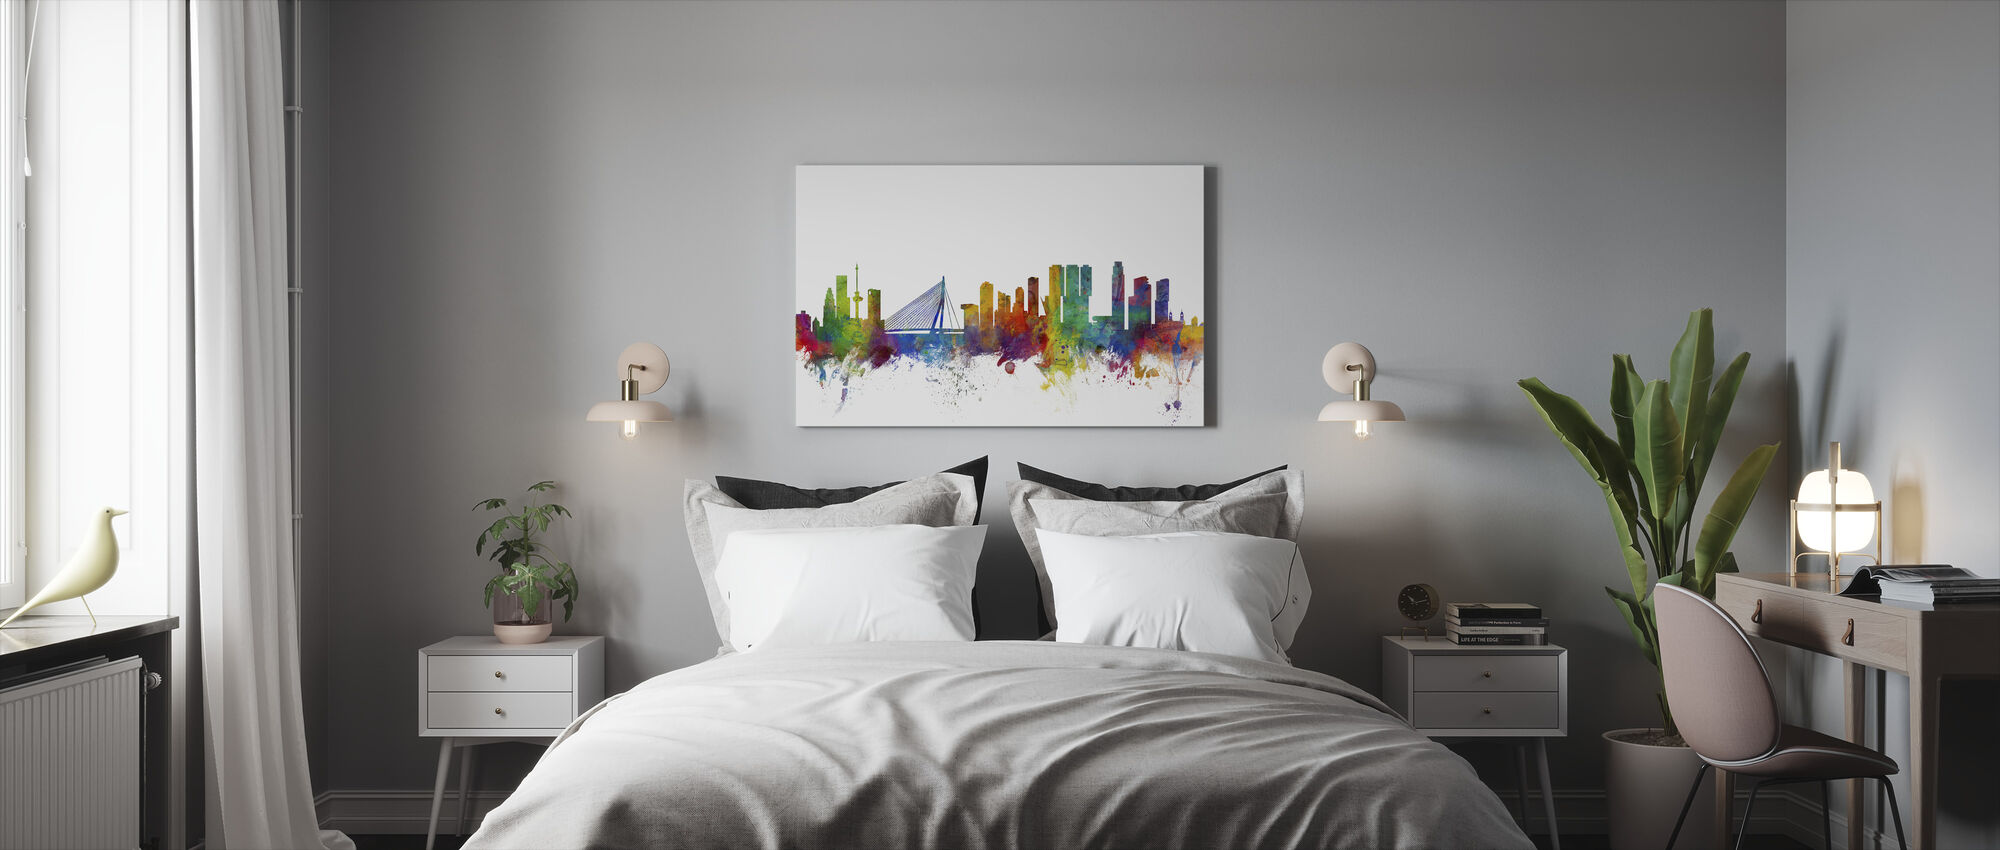 Rotterdam Skyline - Canvas print - Bedroom